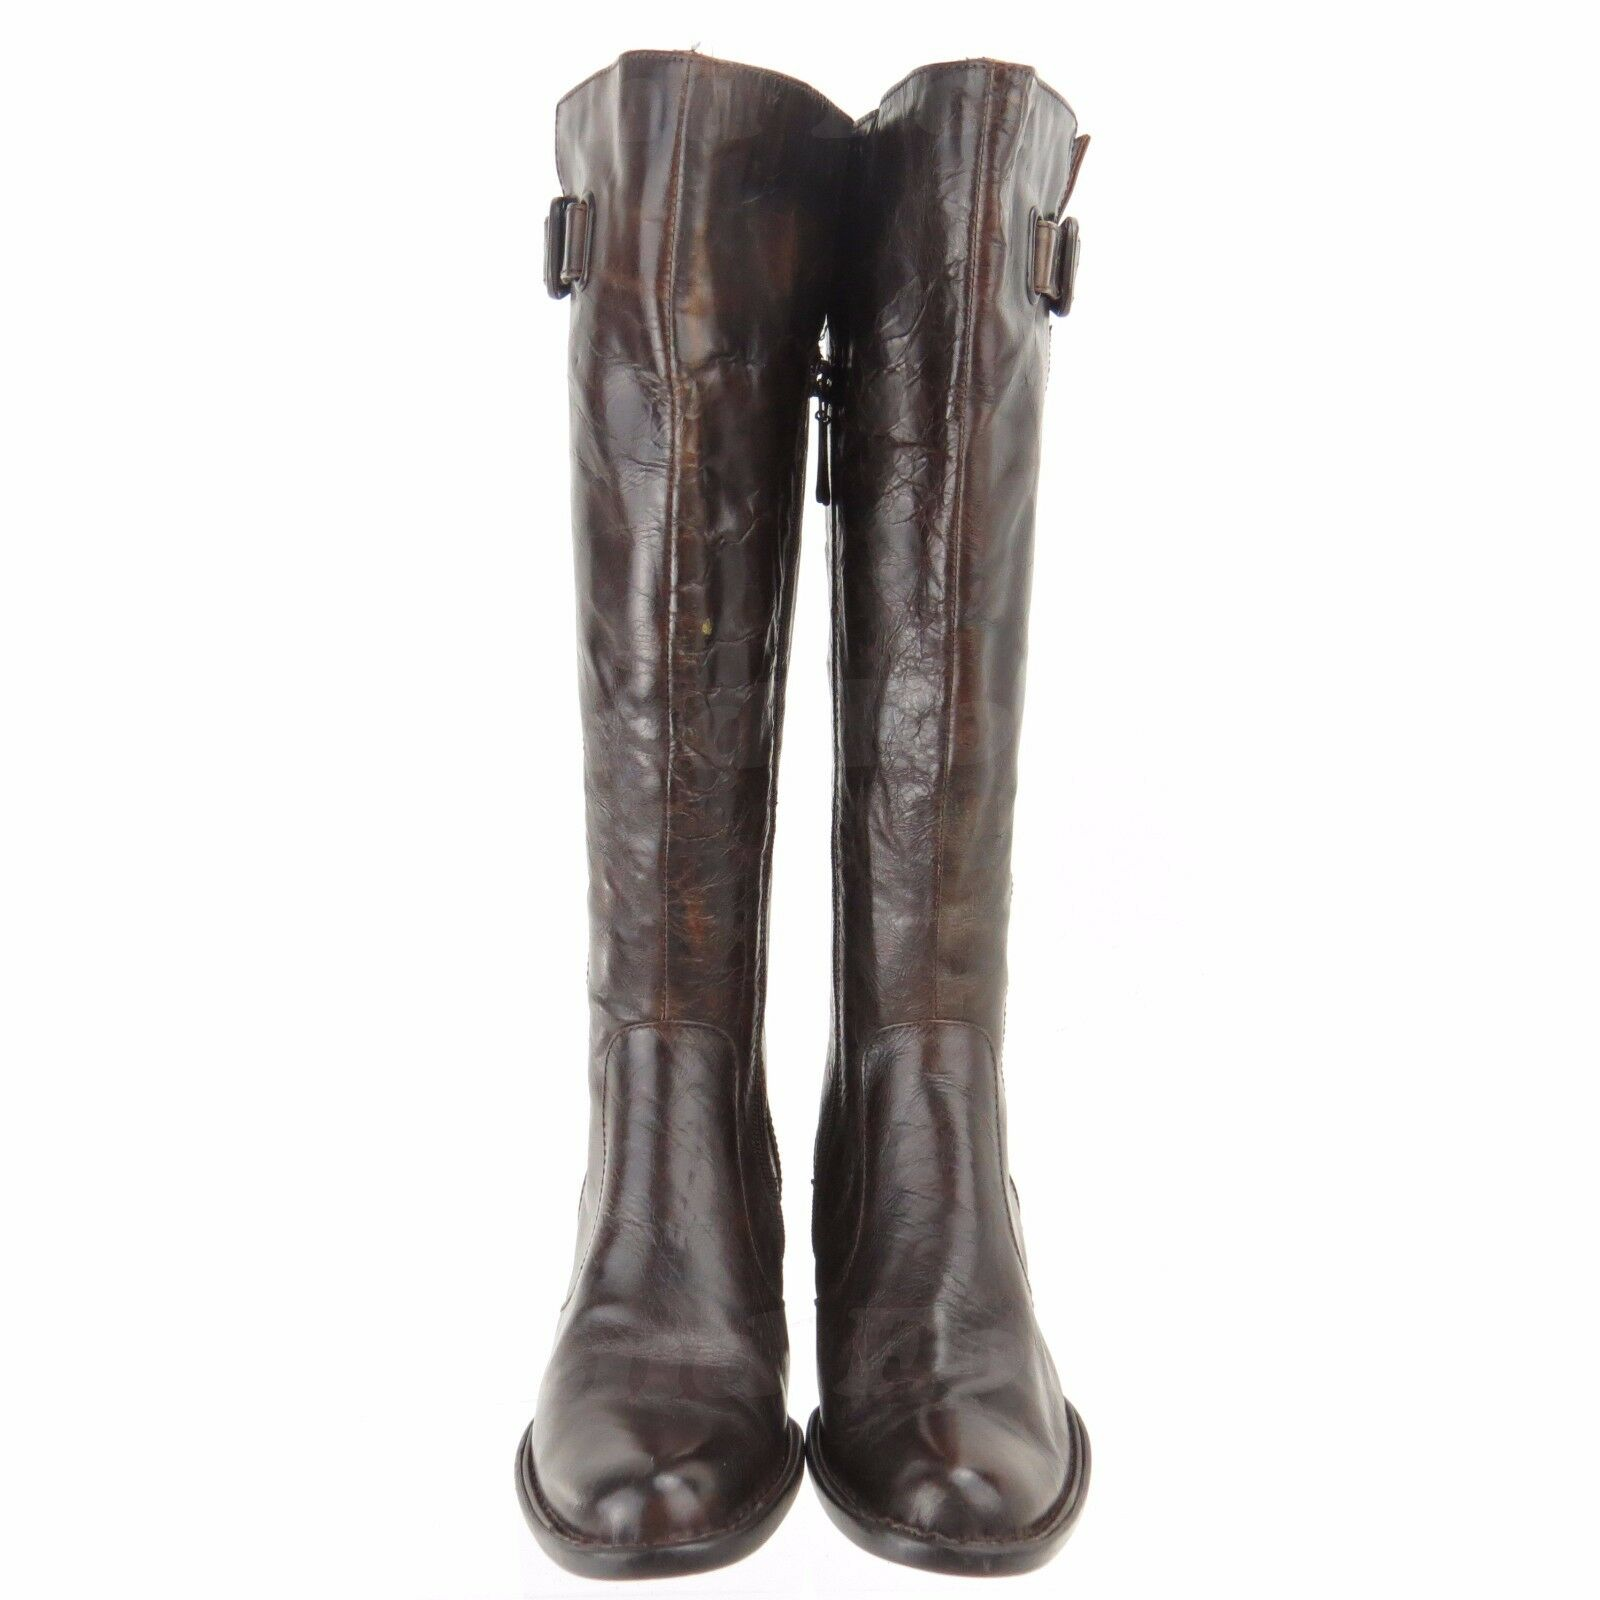 Born Crown Roxie Women's shoes Dark Brown Leather Knee High High High Boots Size 5 M NEW b7d825